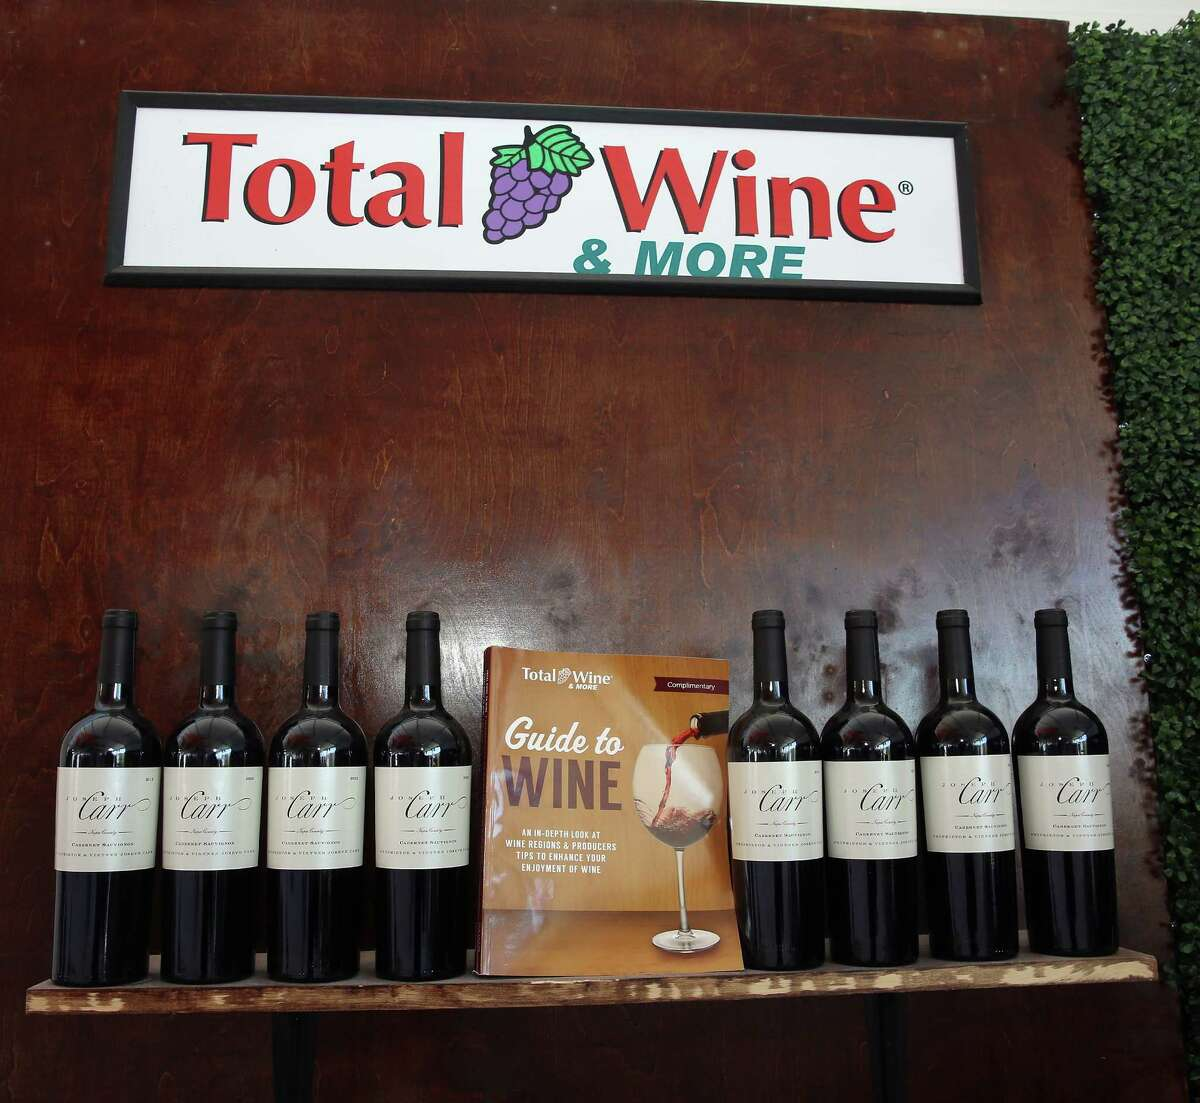 Total Wine & More, a national chain of pachage stores, has dropped its attempt to violate Connecticut's price thresholds, called minimum-bottle pricing.